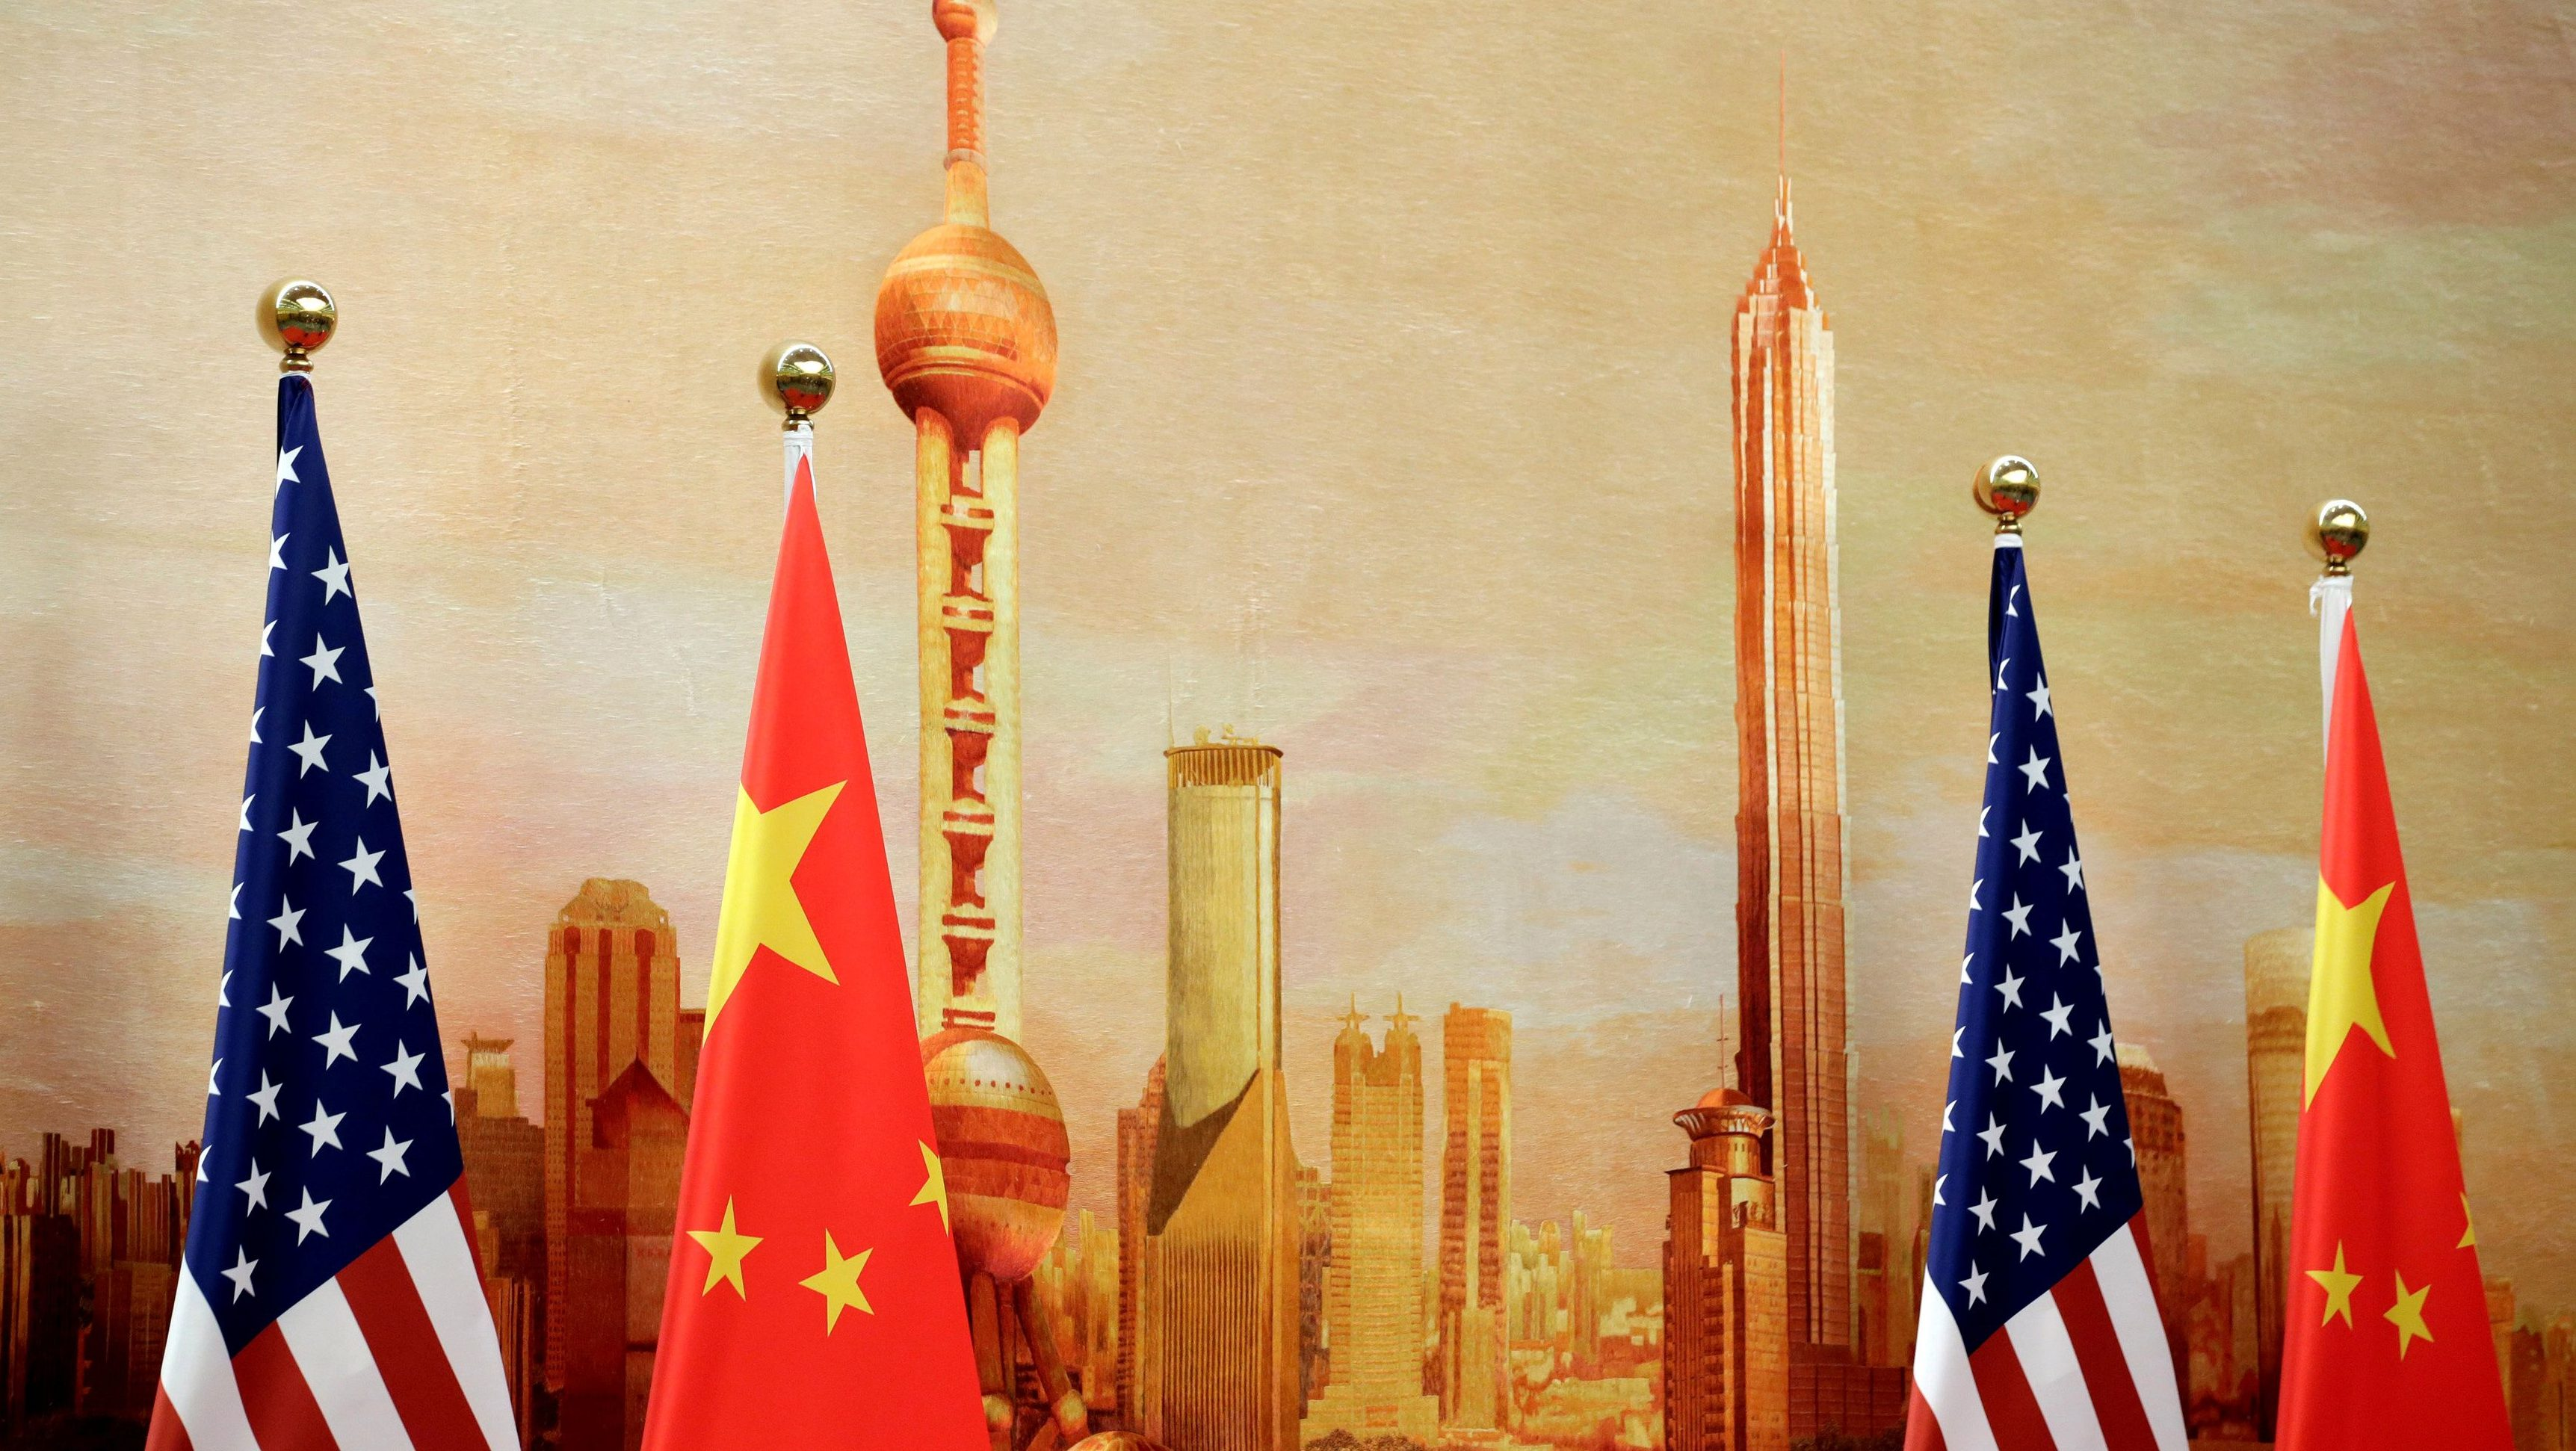 U.S. and Chinese flags are placed for a joint news conference by U.S. Secretary of State Mike Pompeo and Chinese Foreign Minister Wang Yi at the Great Hall of the People in Beijing, China June 14, 2018.